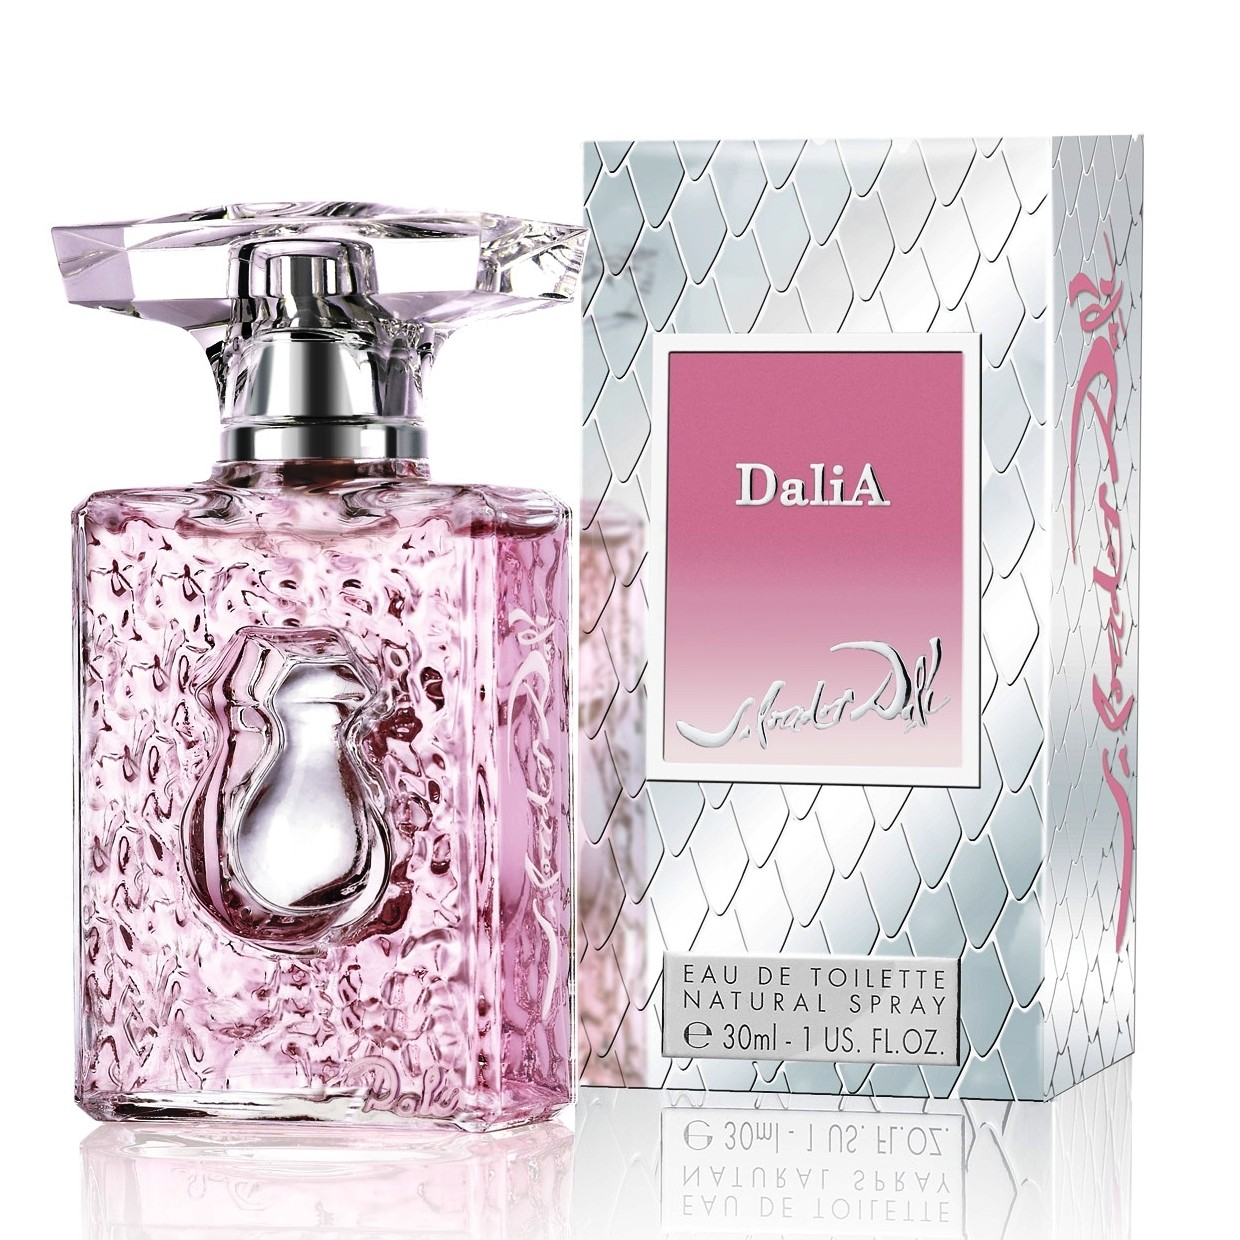 Salvador Dali DaliA EdT 50 ml